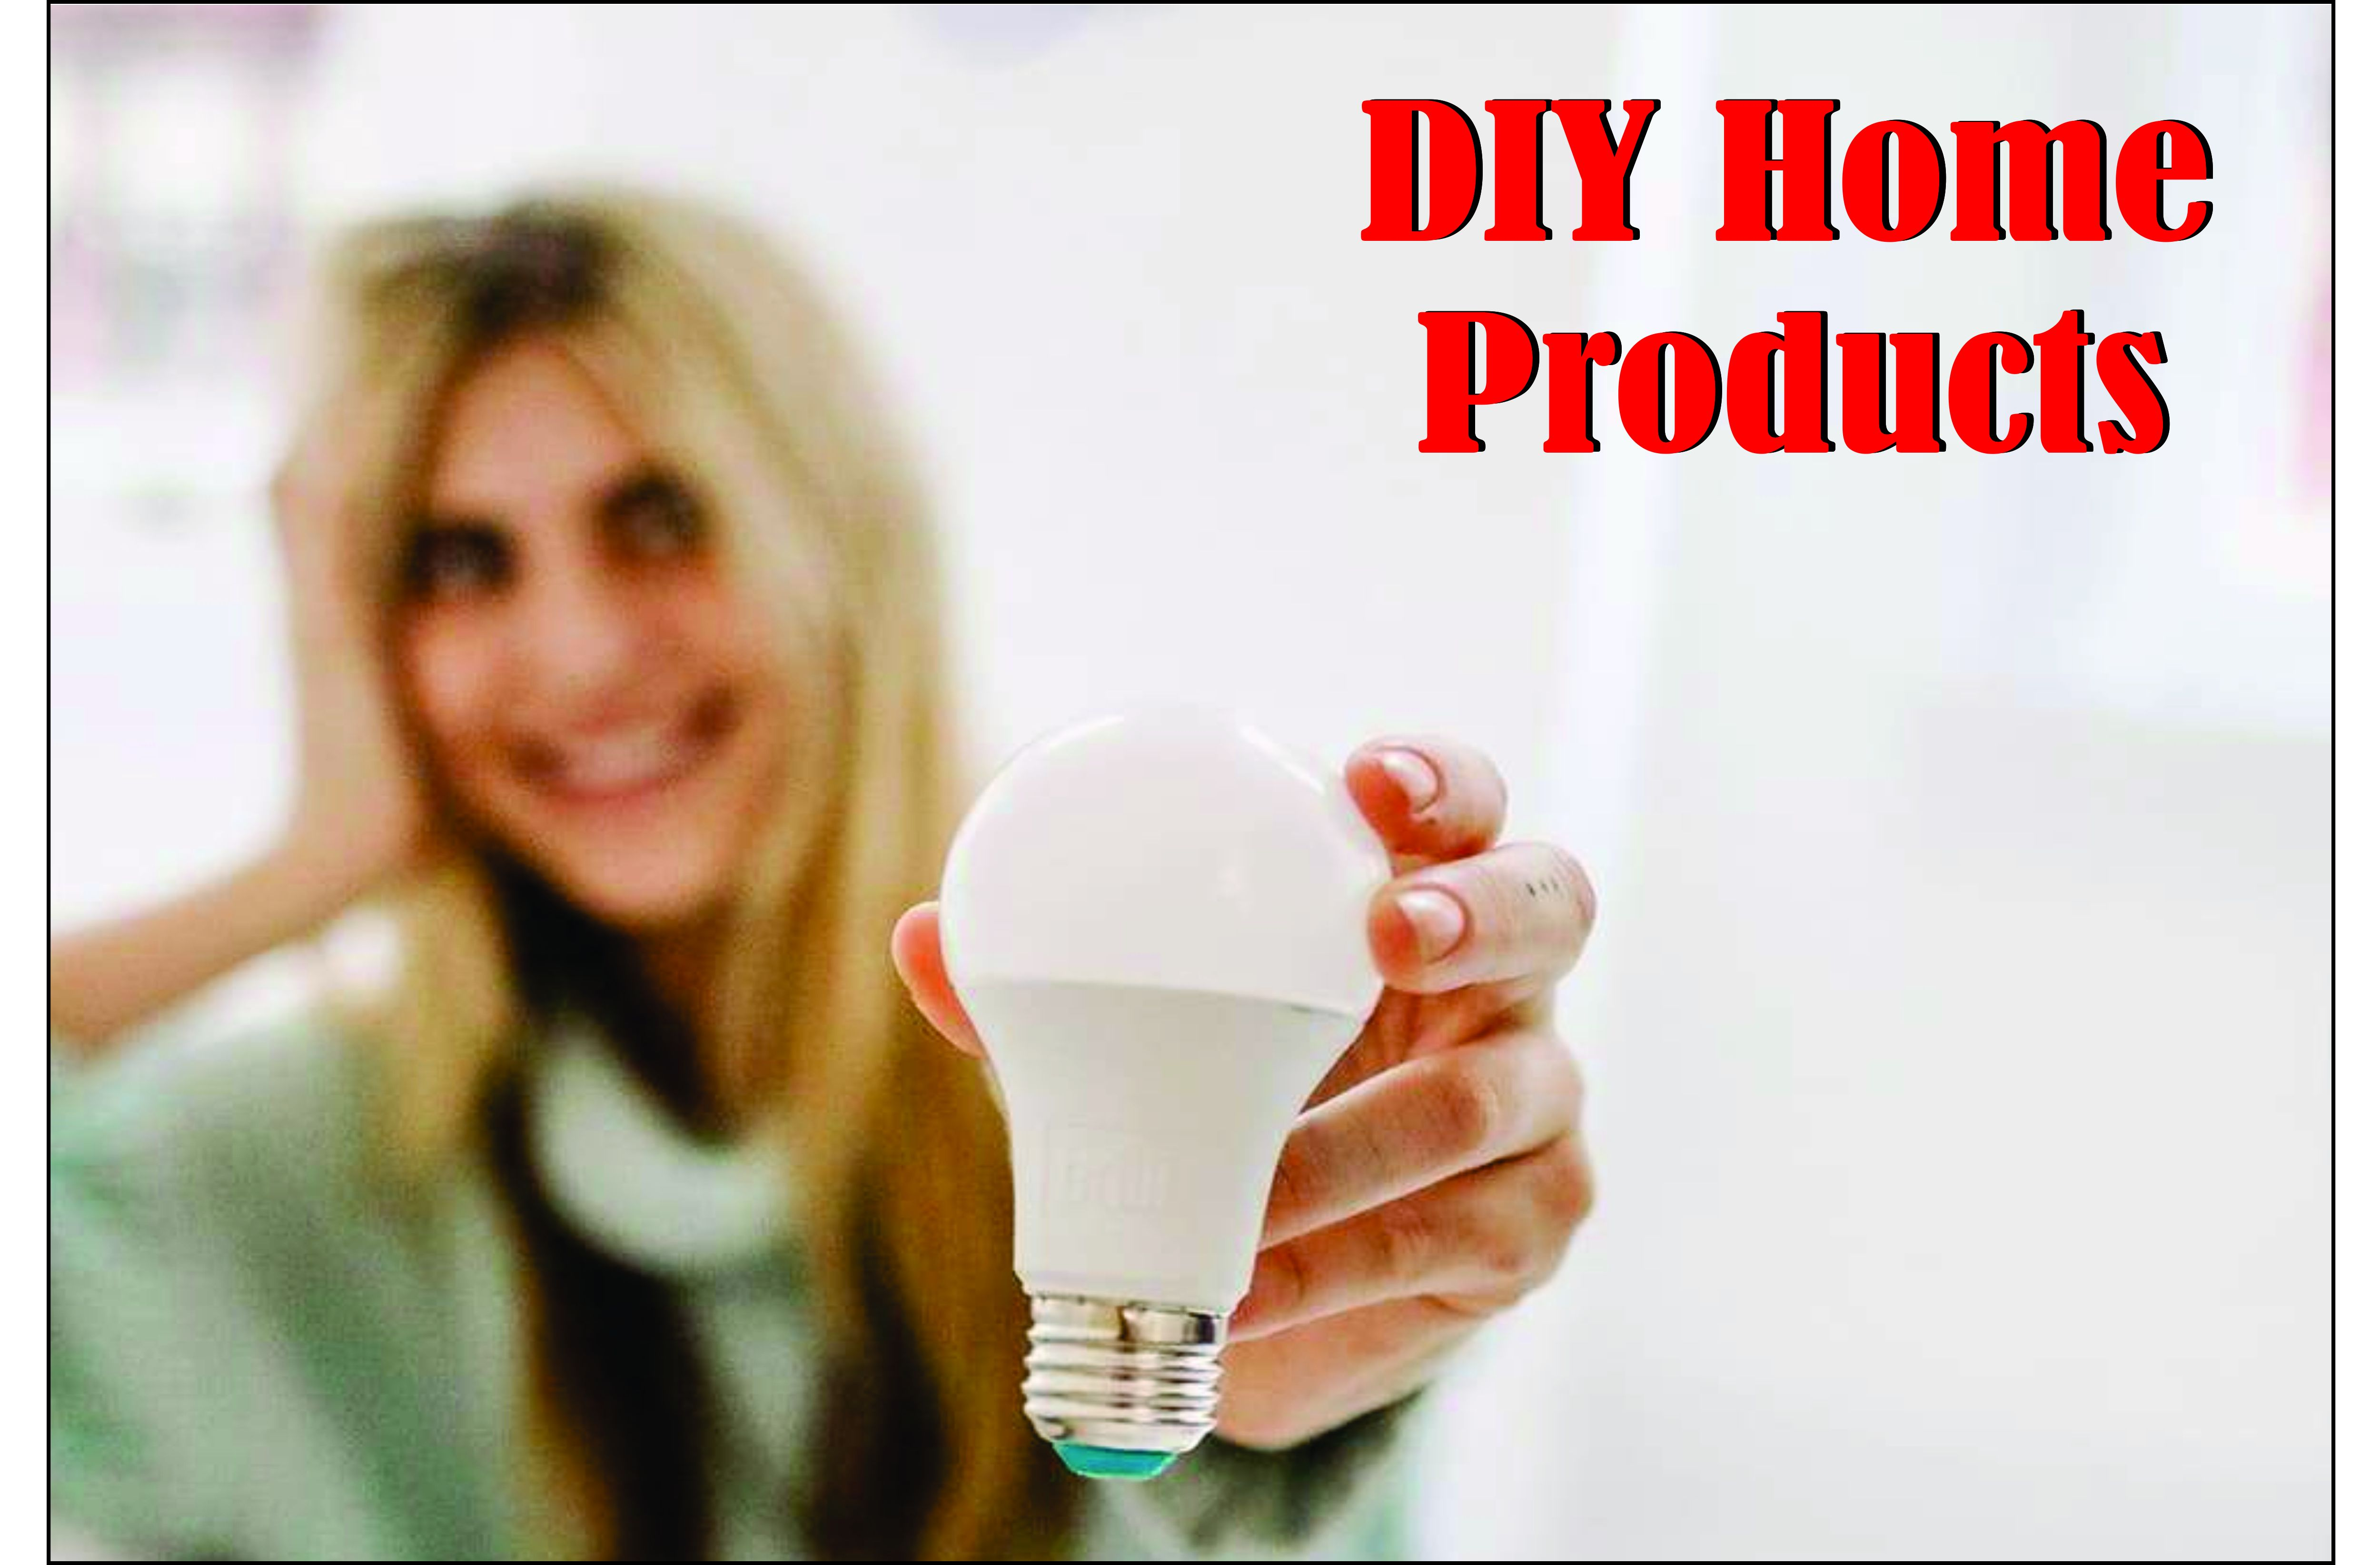 diy_home_products.jpg